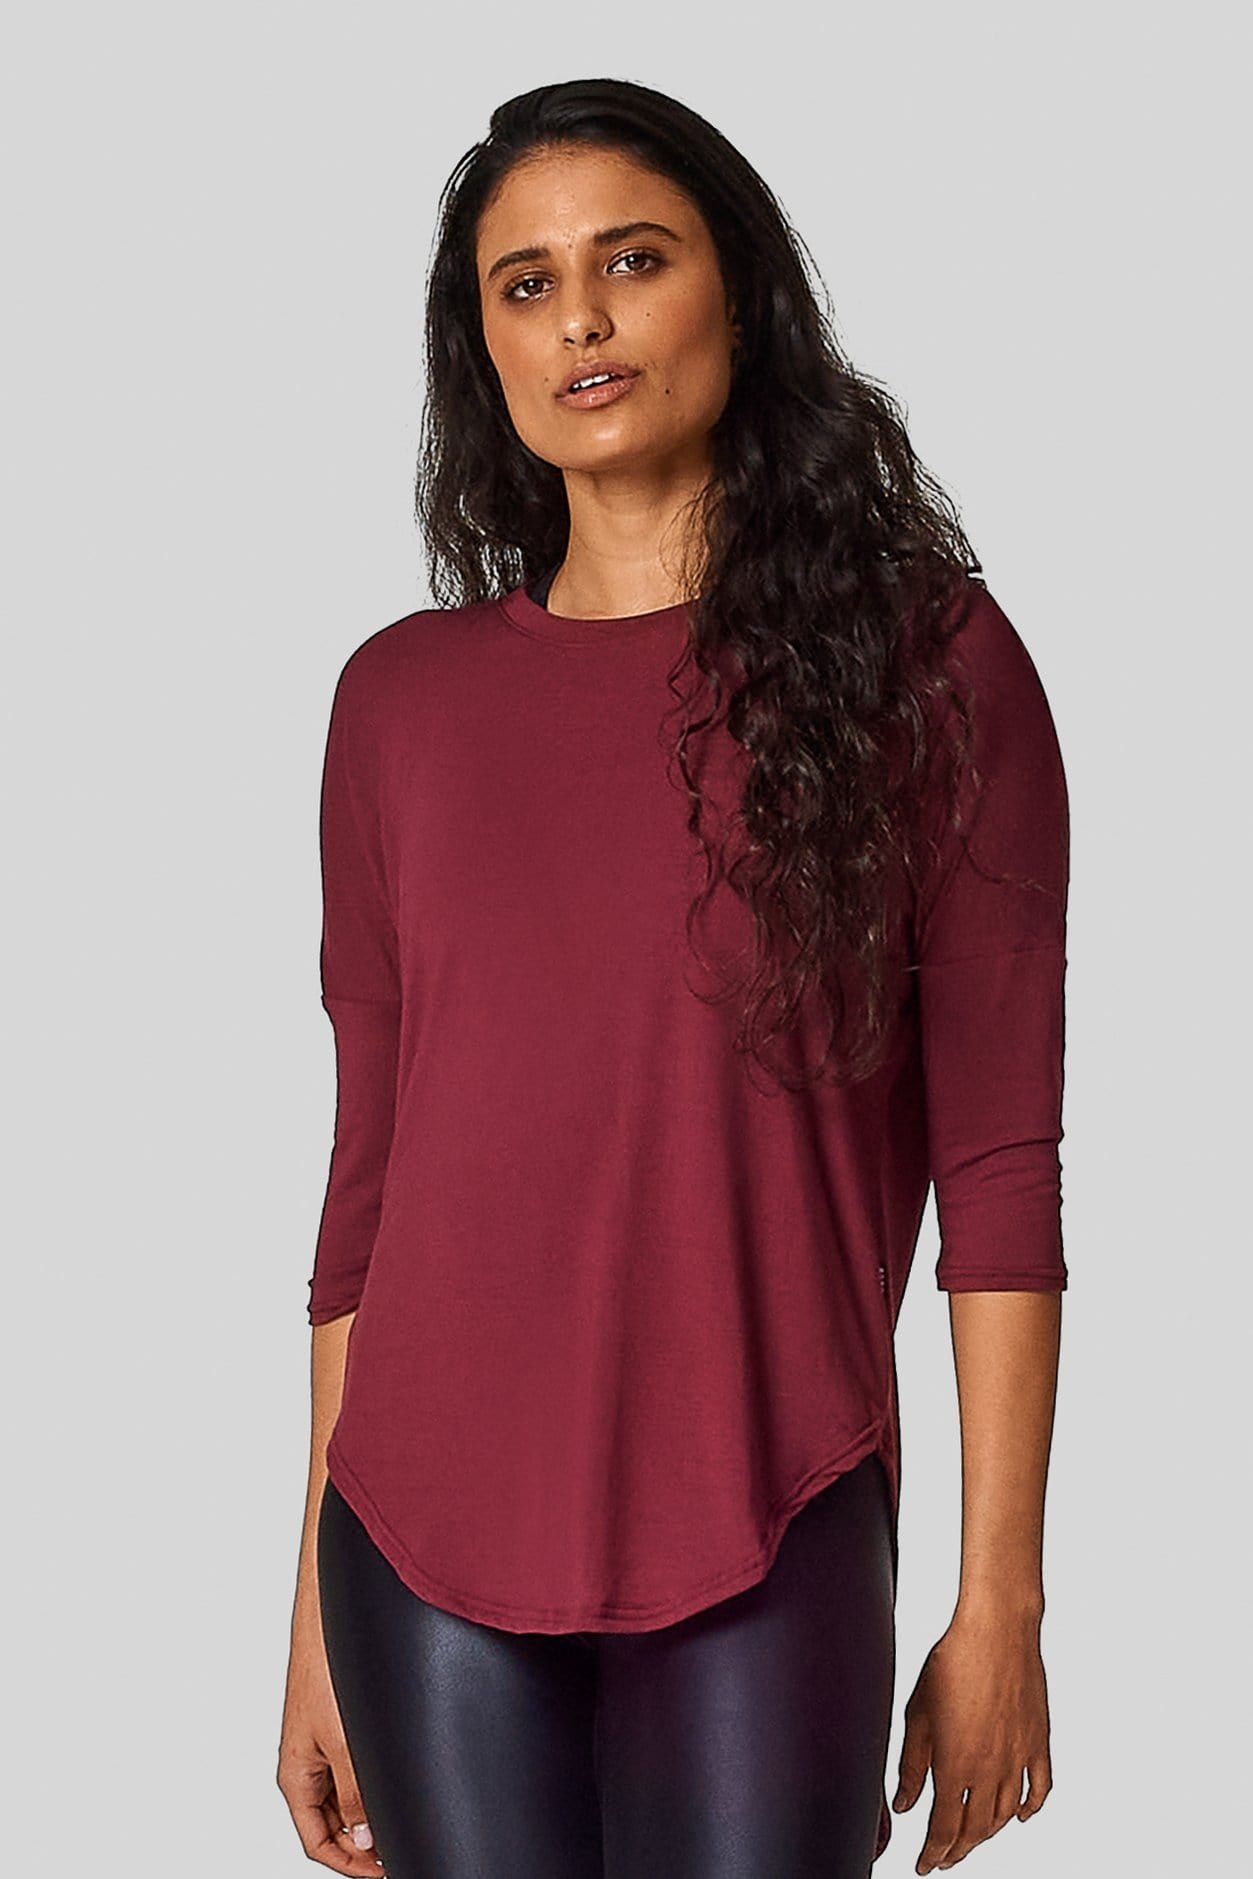 A girl wears a red tee shirt with a scooped hem & 3/4 length sleeves